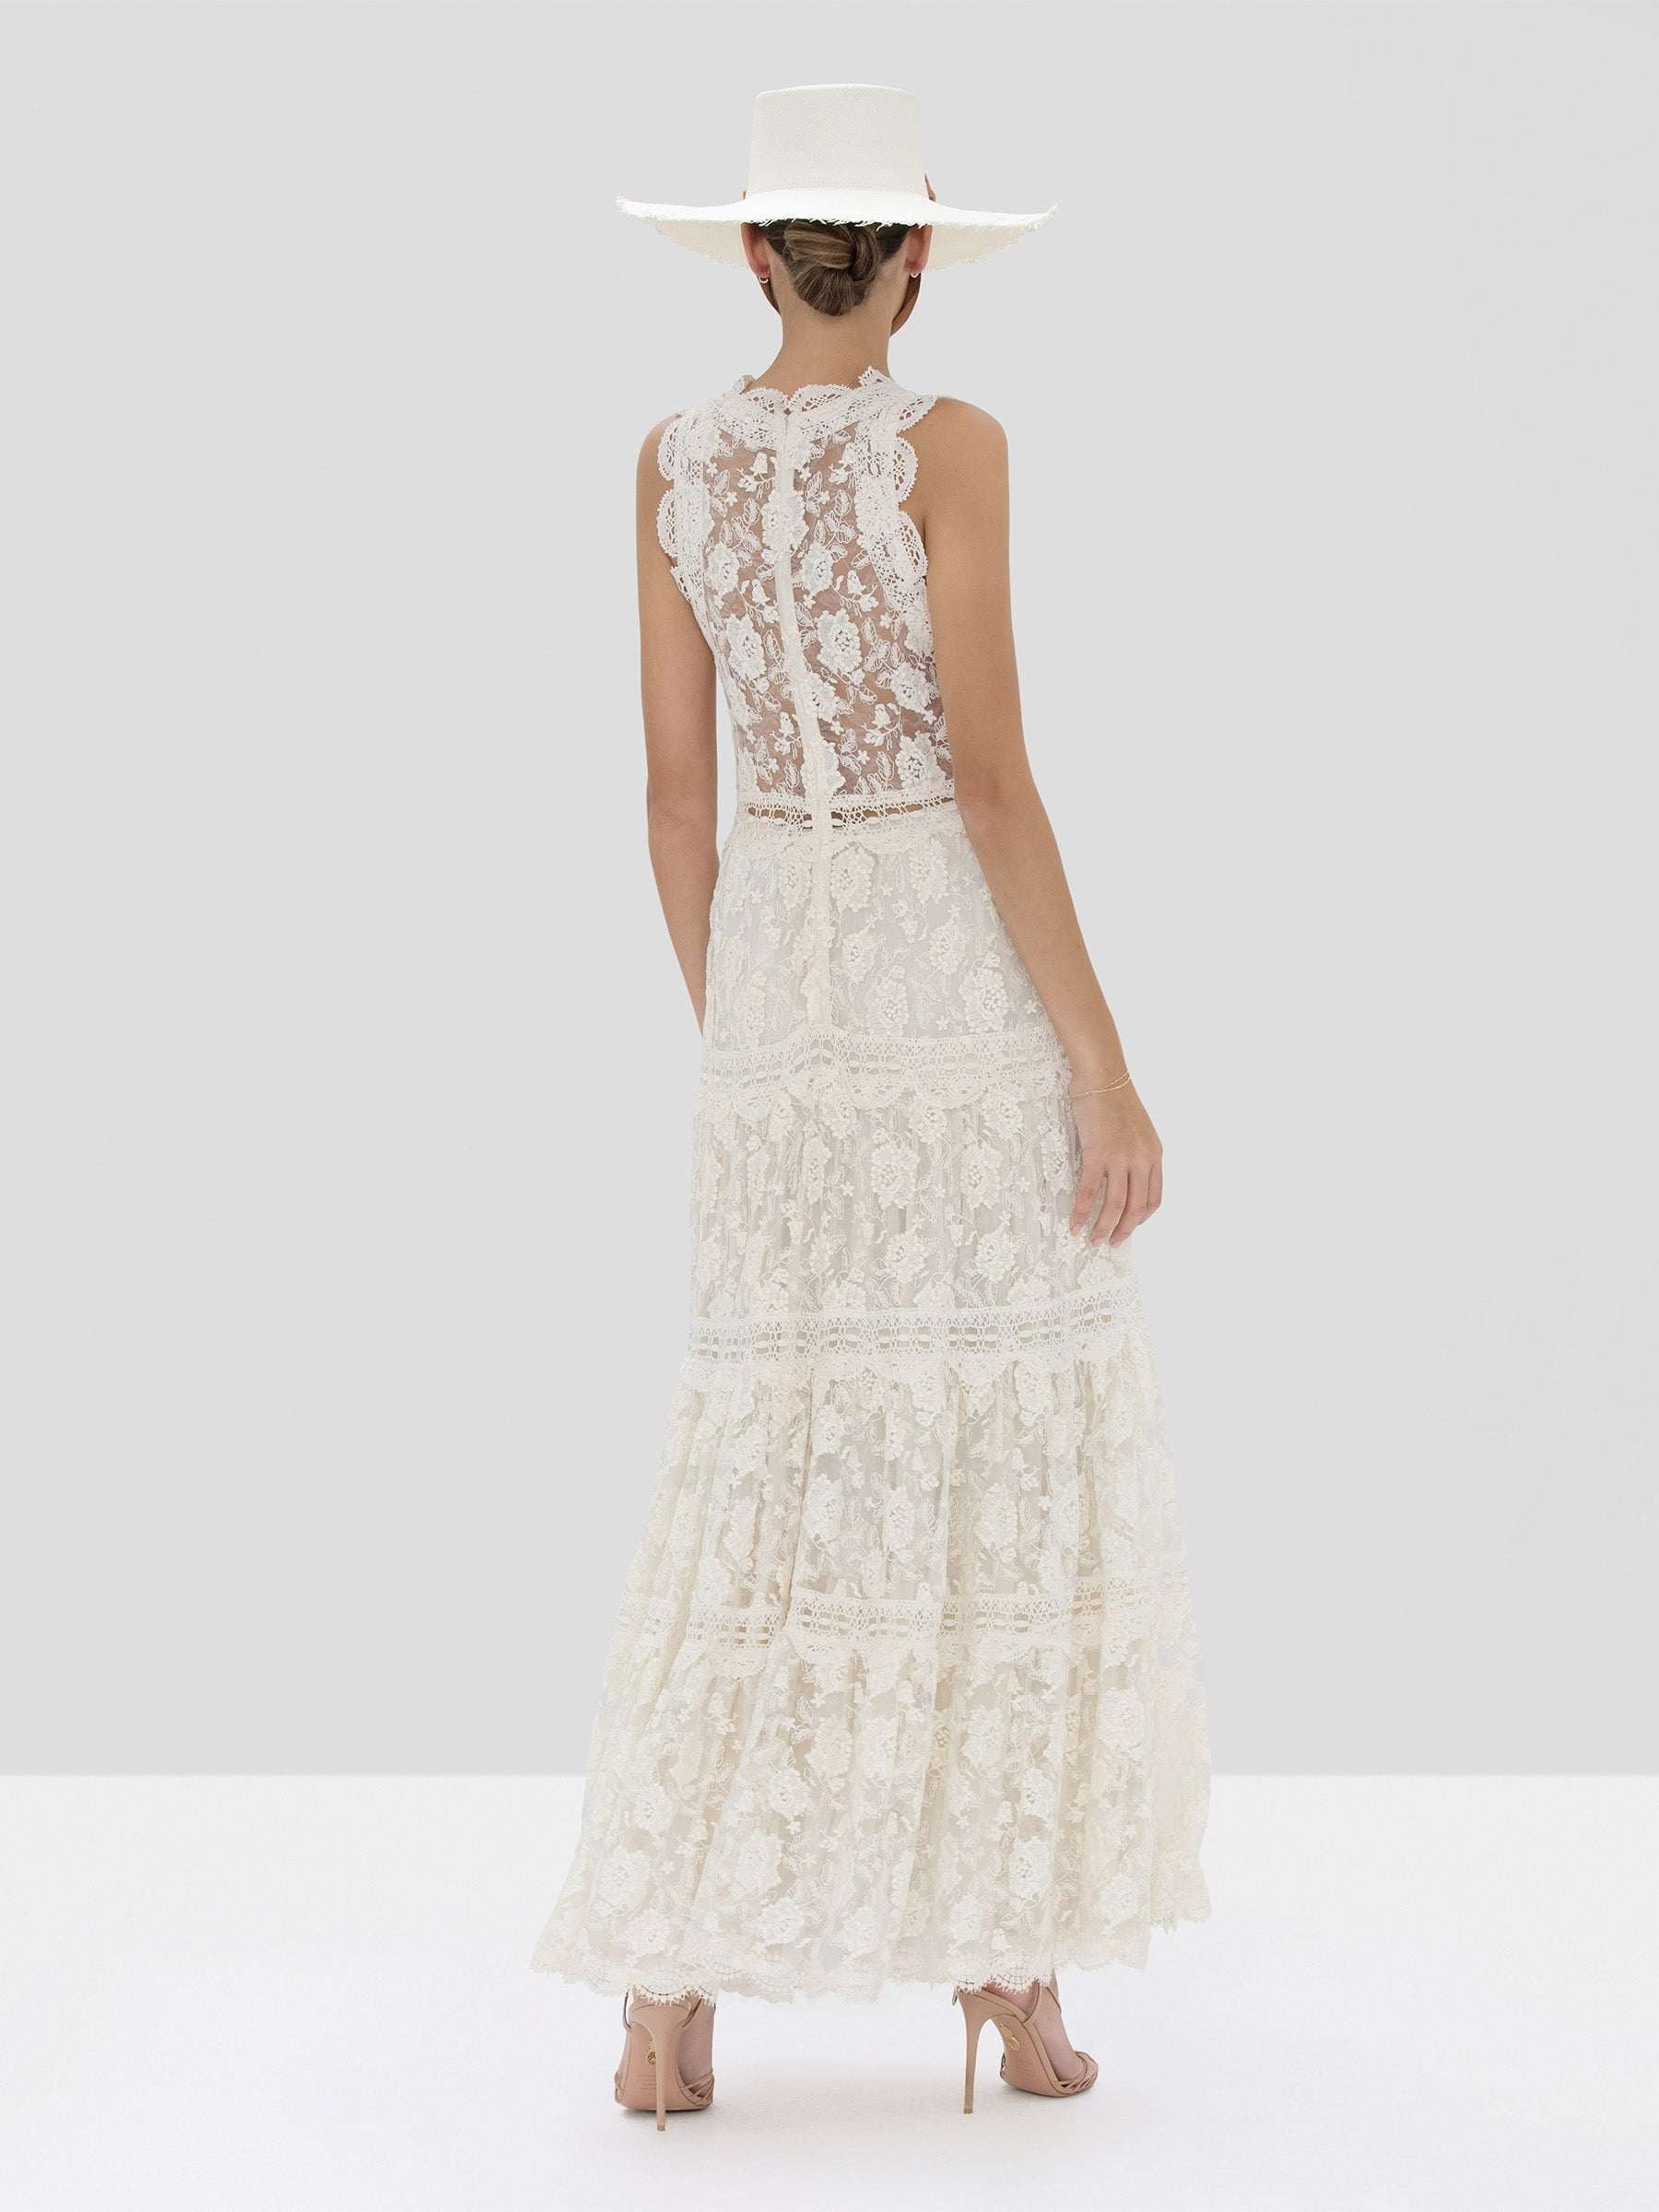 Alexis Havana Dress in Ivory from Spring Summer 2020 Collection - Rear View